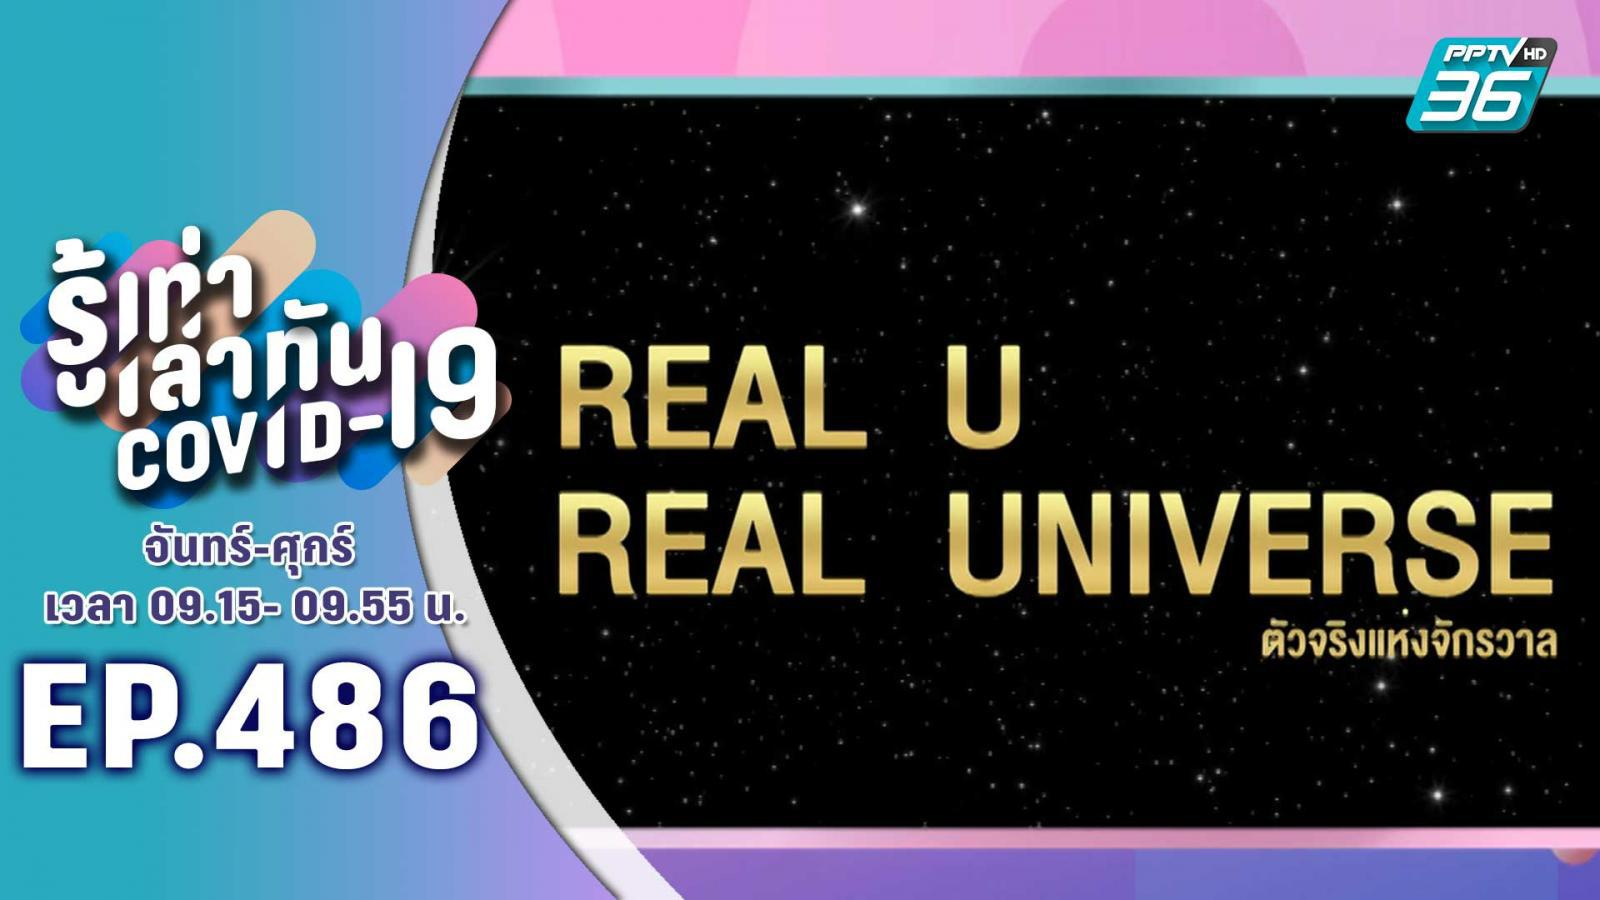 Miss Universe Thailand 2020 Real U, Real Universe